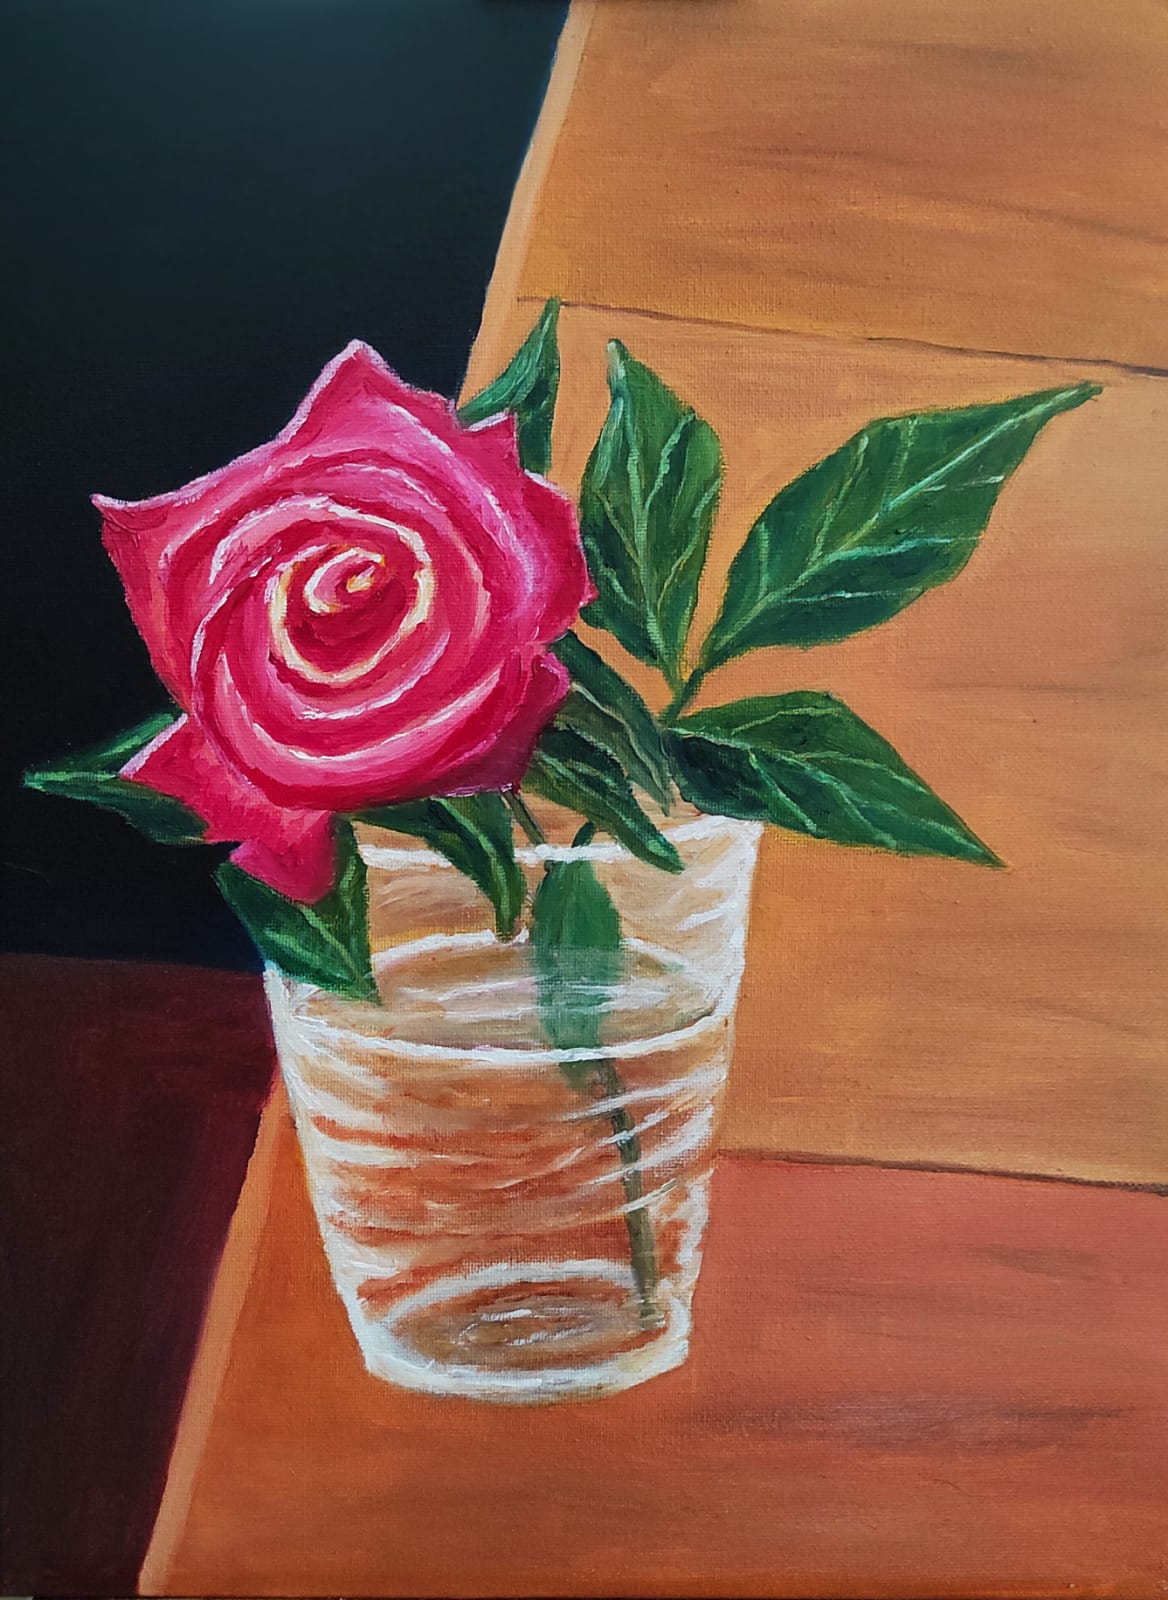 Irish Oil Painting of a pink rose in a glass. The painting is 30X40 cm and is for sale at €160